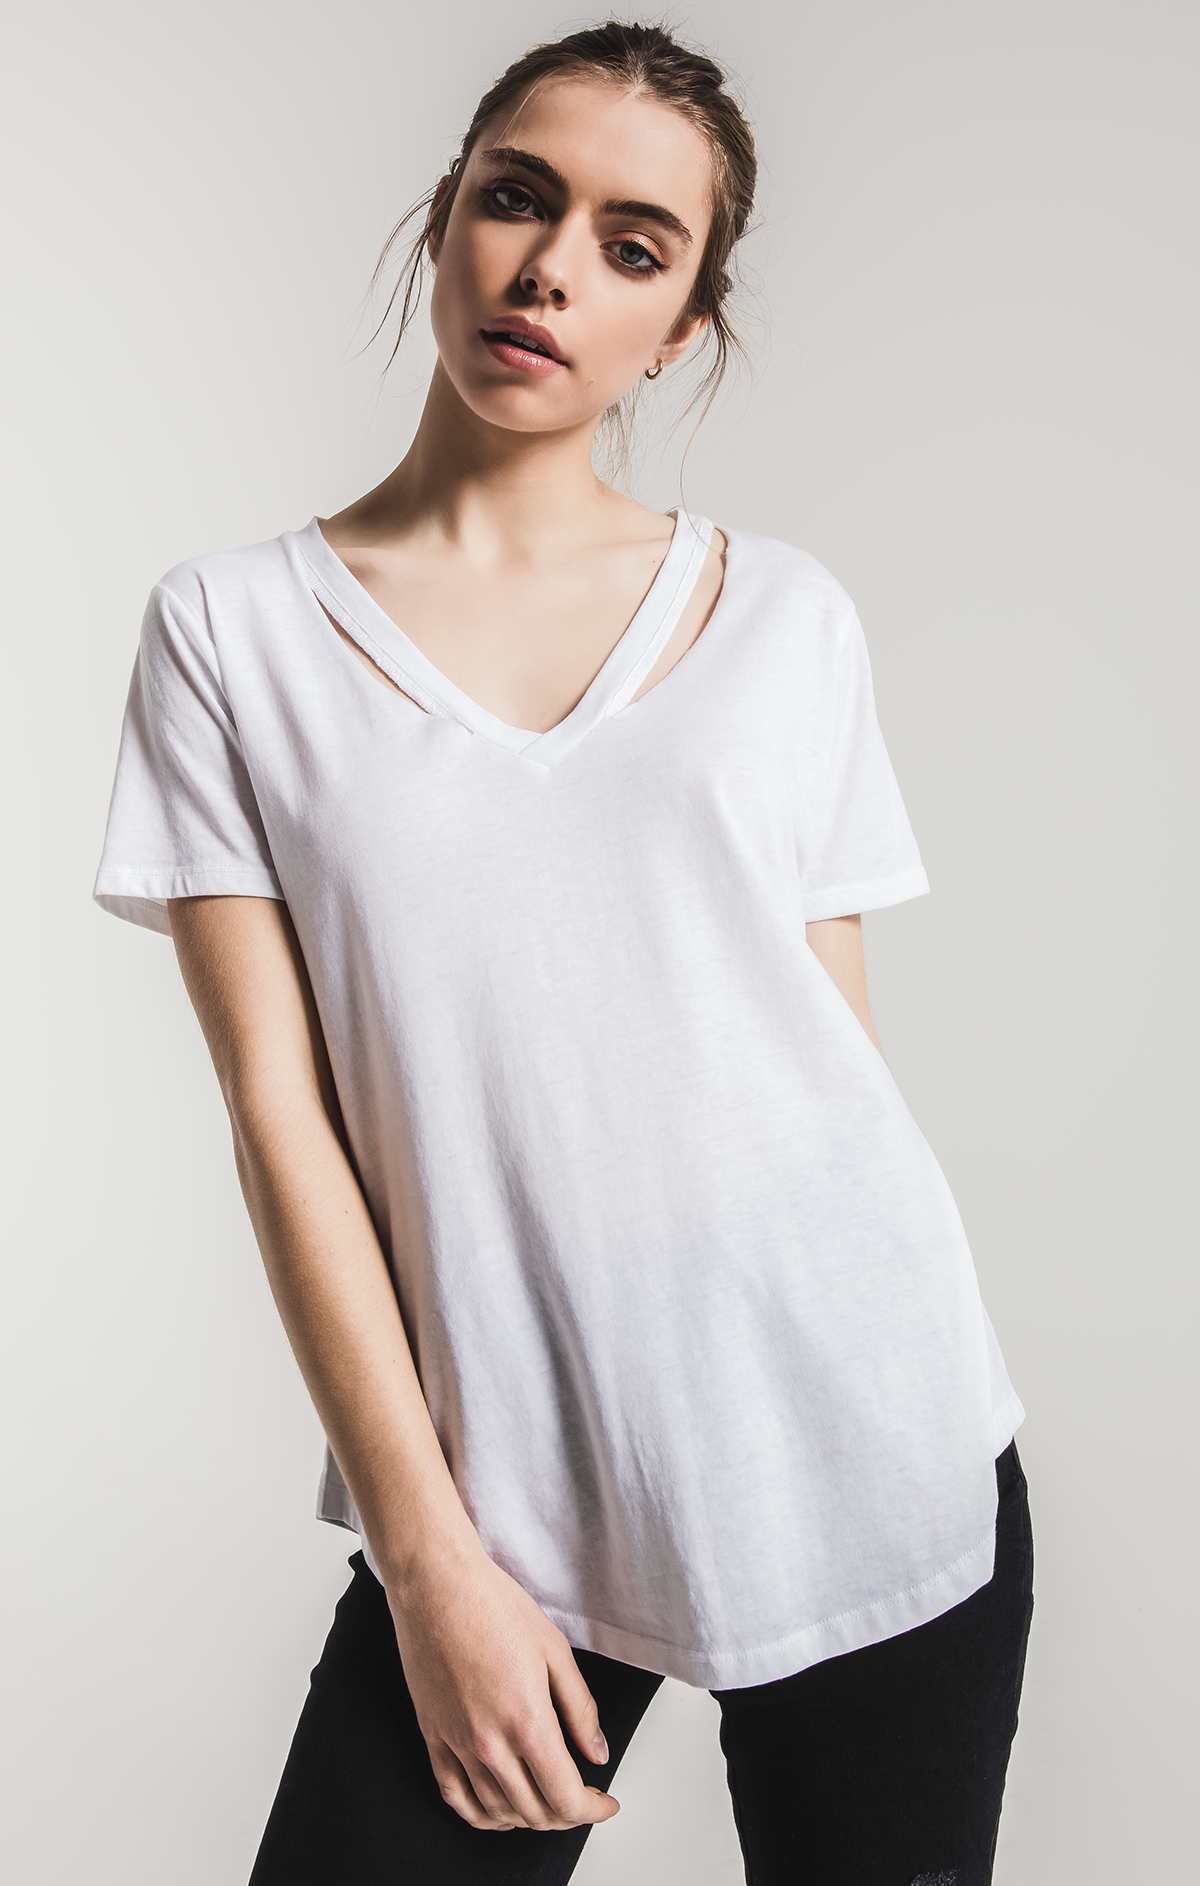 the-cut-out-v-neck-tee-glossary-terminology-types-of-necklines